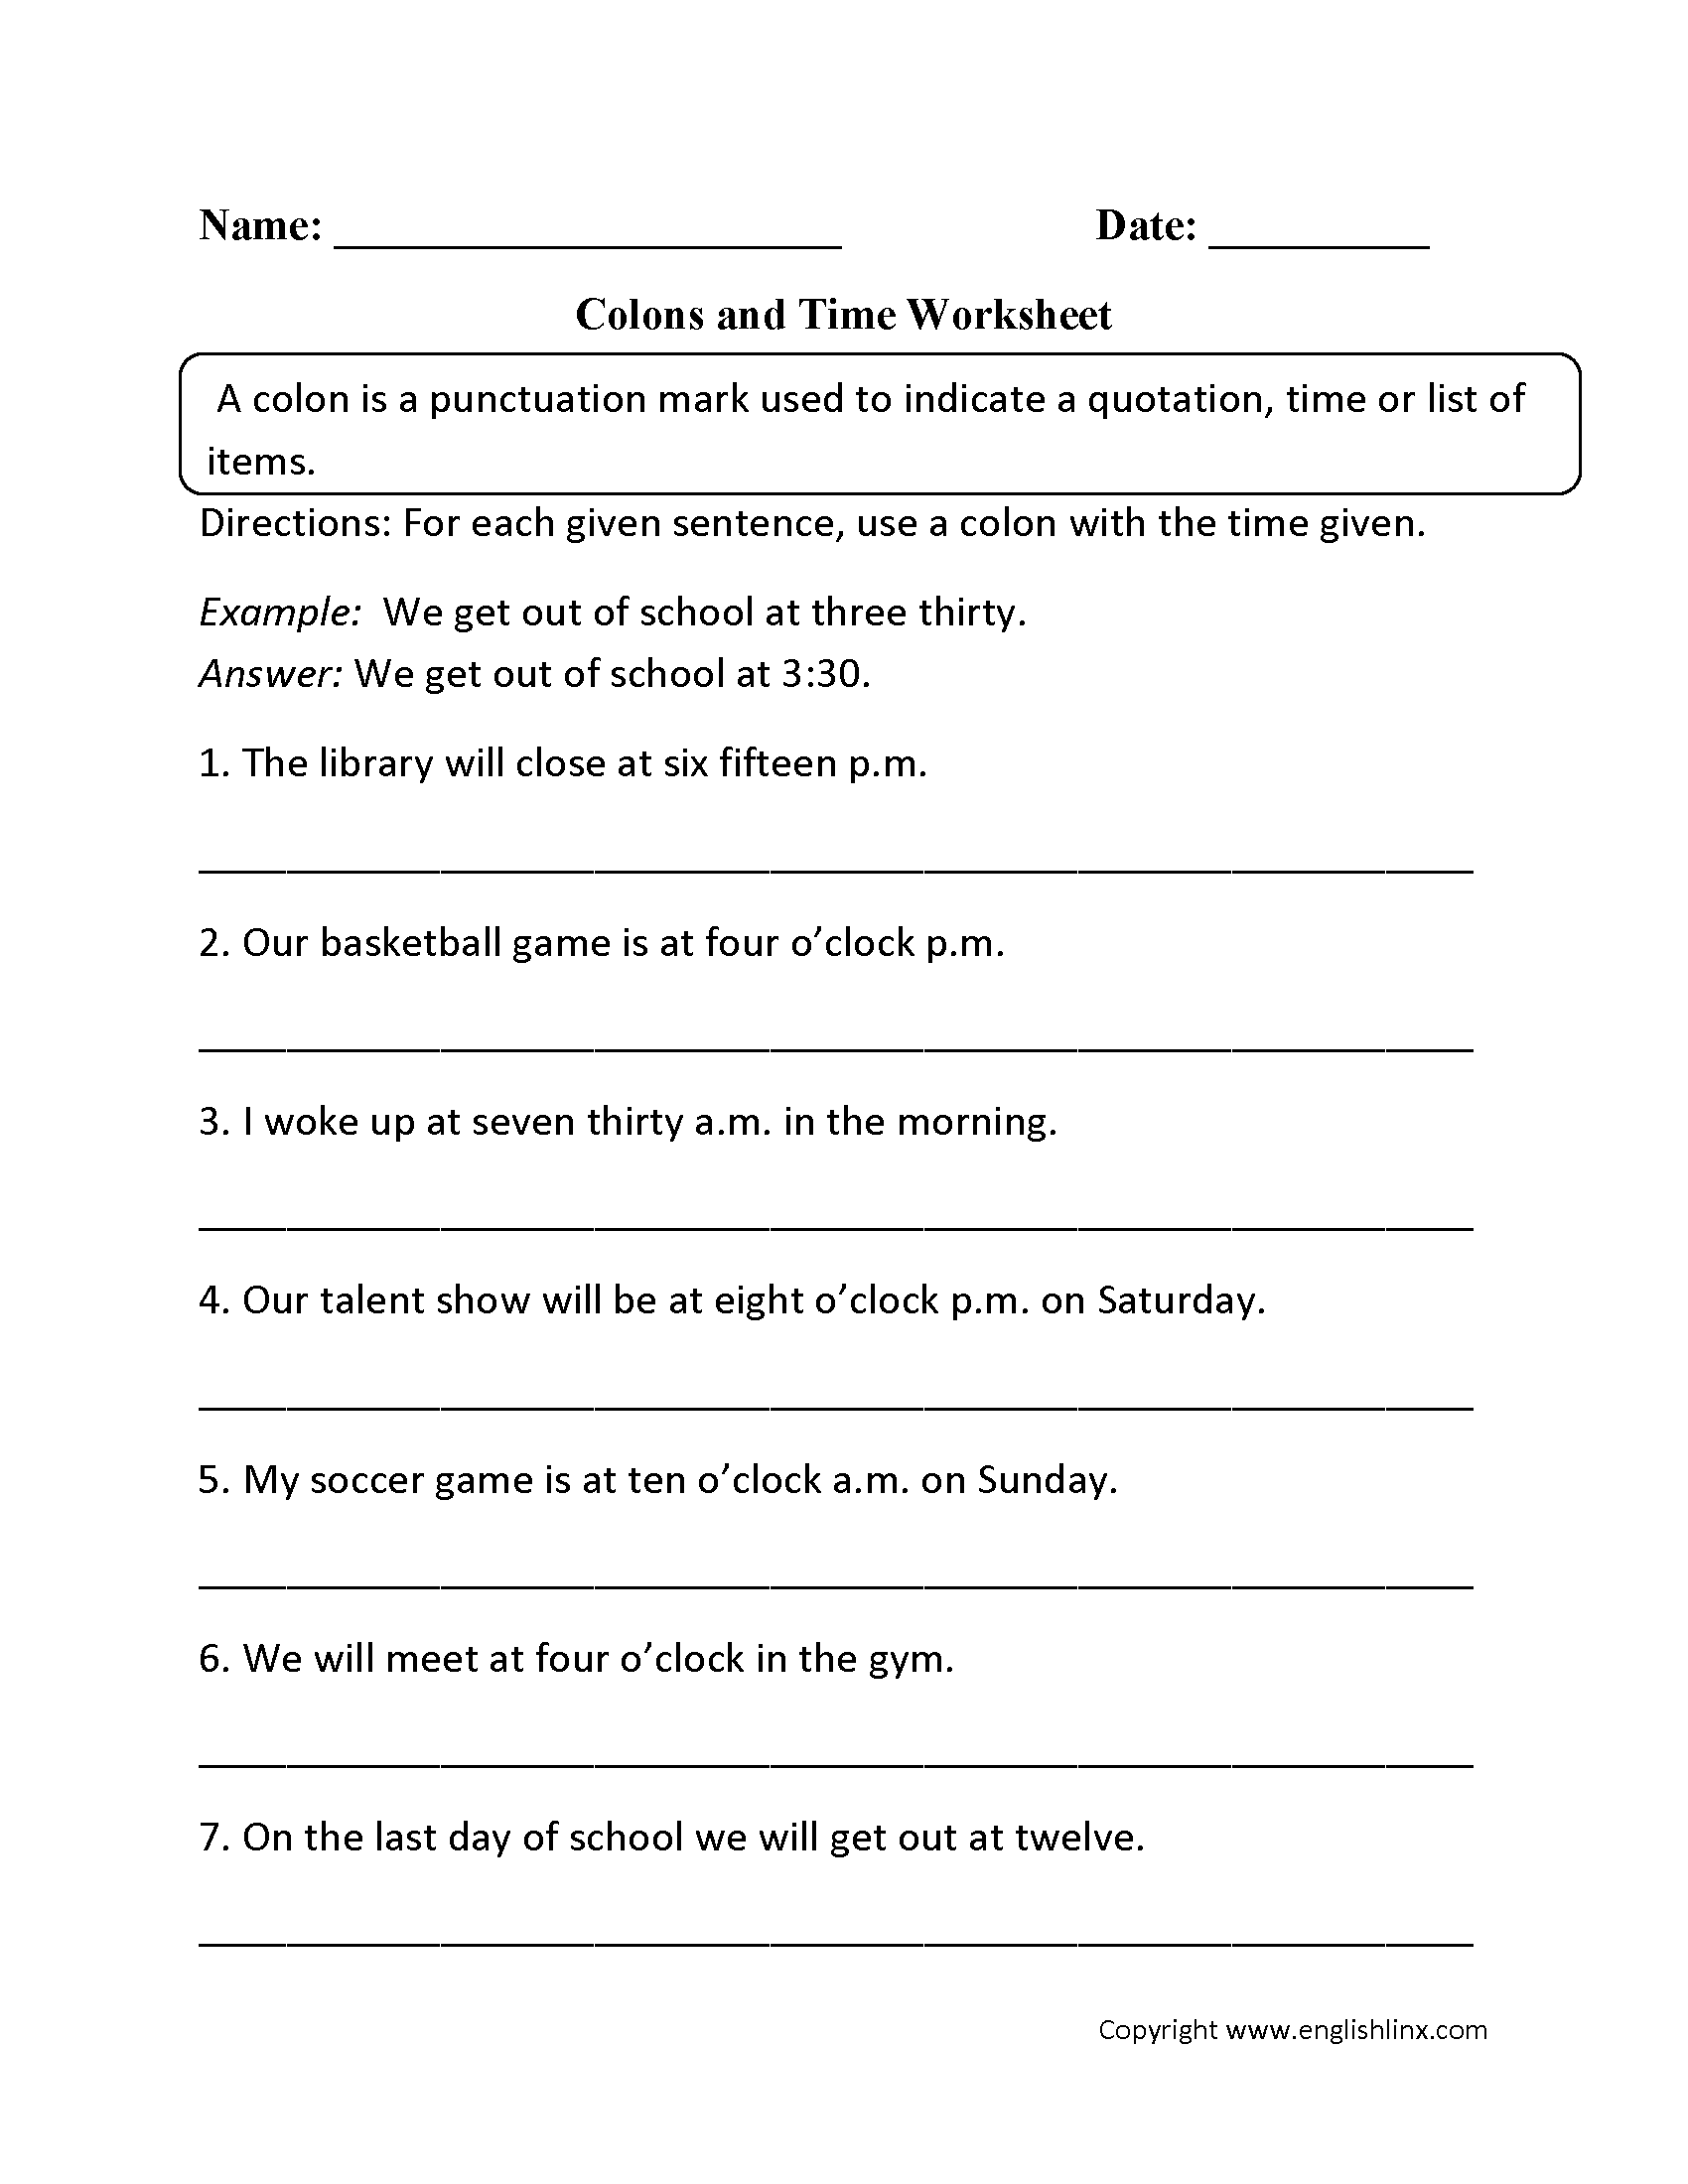 worksheet Grammar Worksheets 7th Grade punctuation worksheets colon worksheets